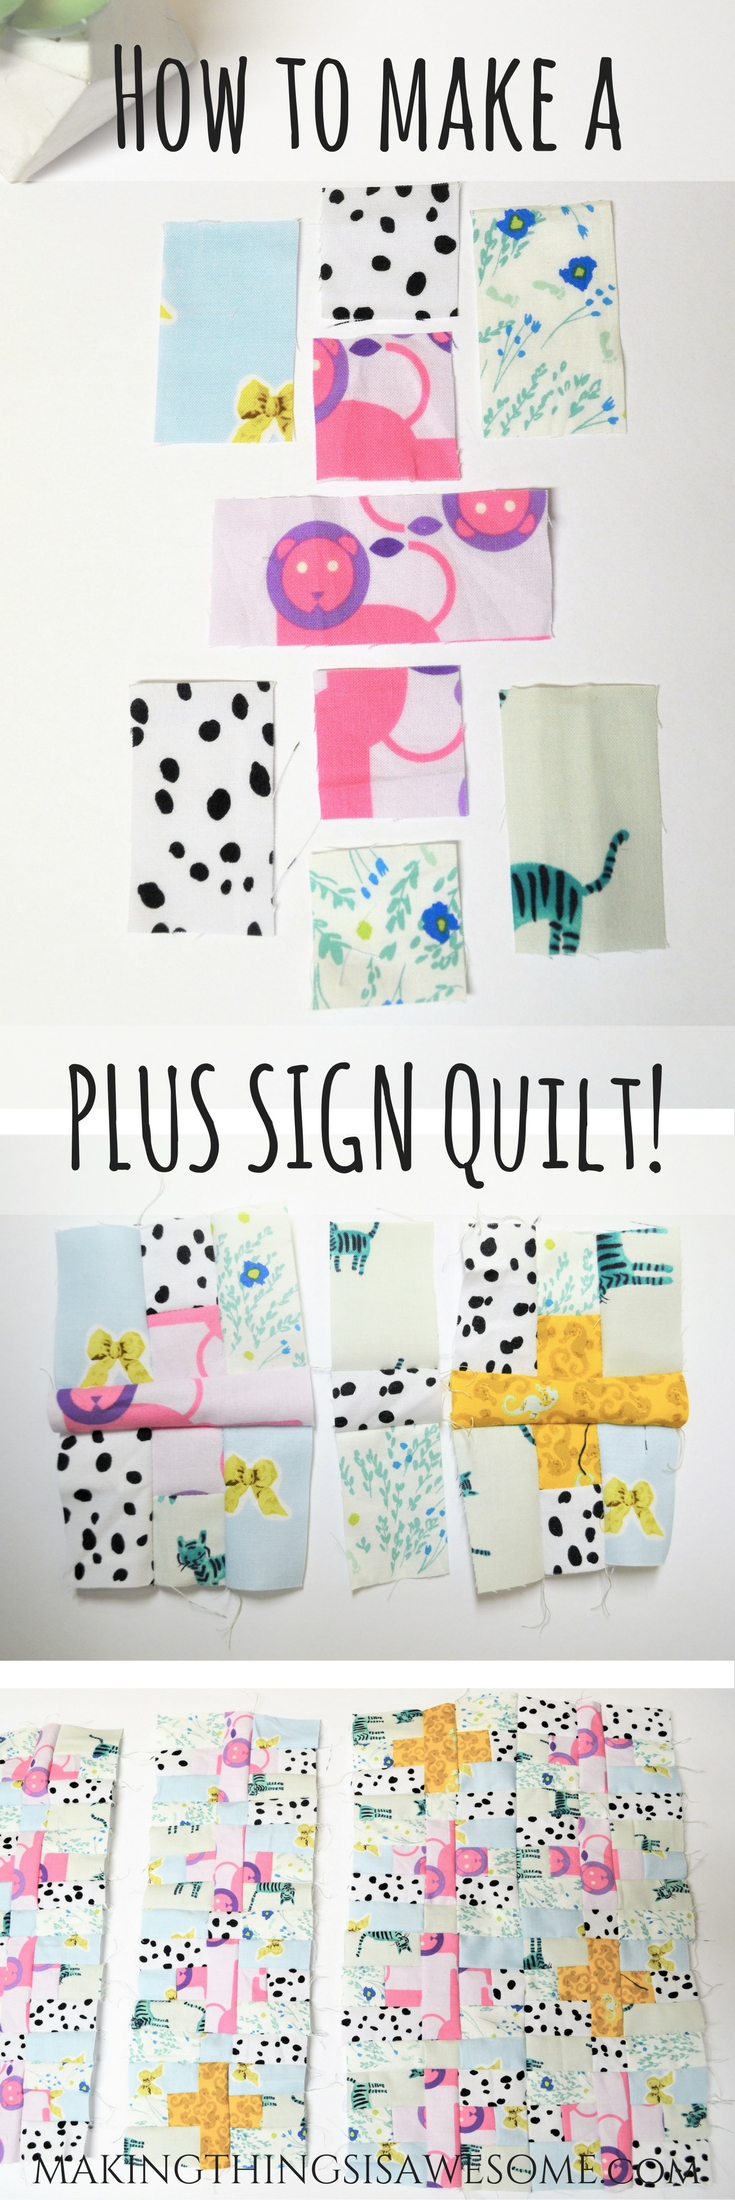 How to make a plus sign quilt